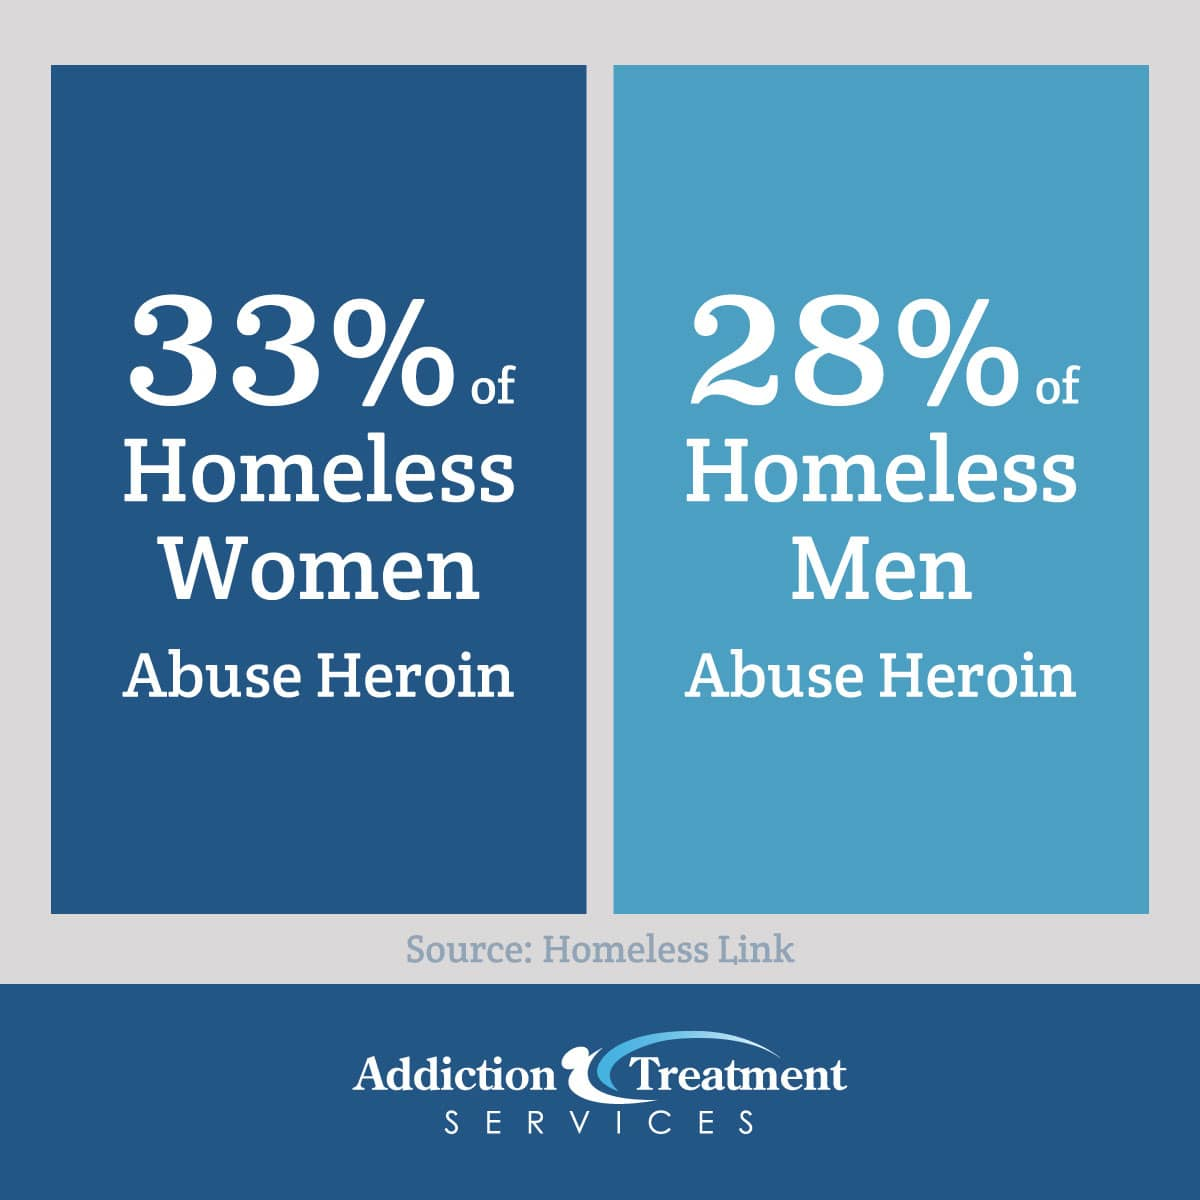 Homeless Women And Men Abuse Heroin Statistic - Addiction Treatment Services